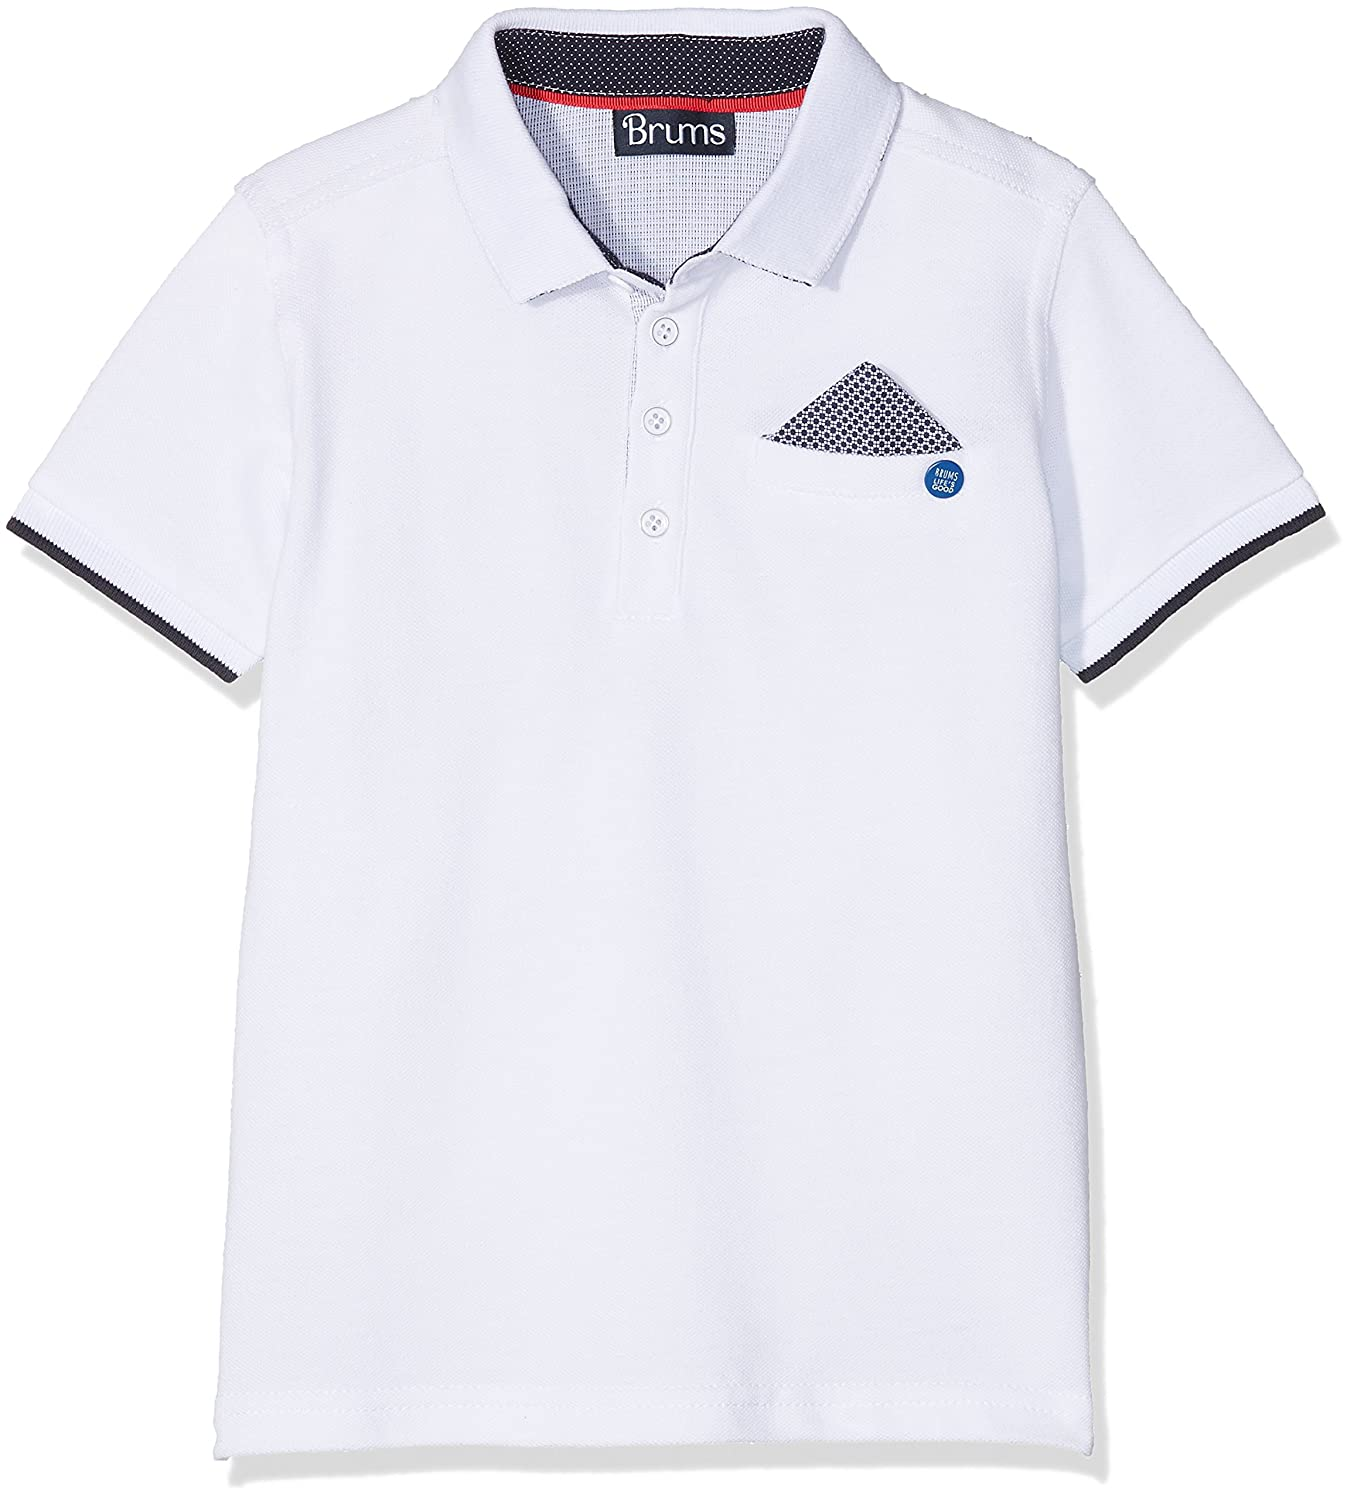 Brums 181BFFN018, Polo Para Bebés, Blanco (Optical White 01 001 ...